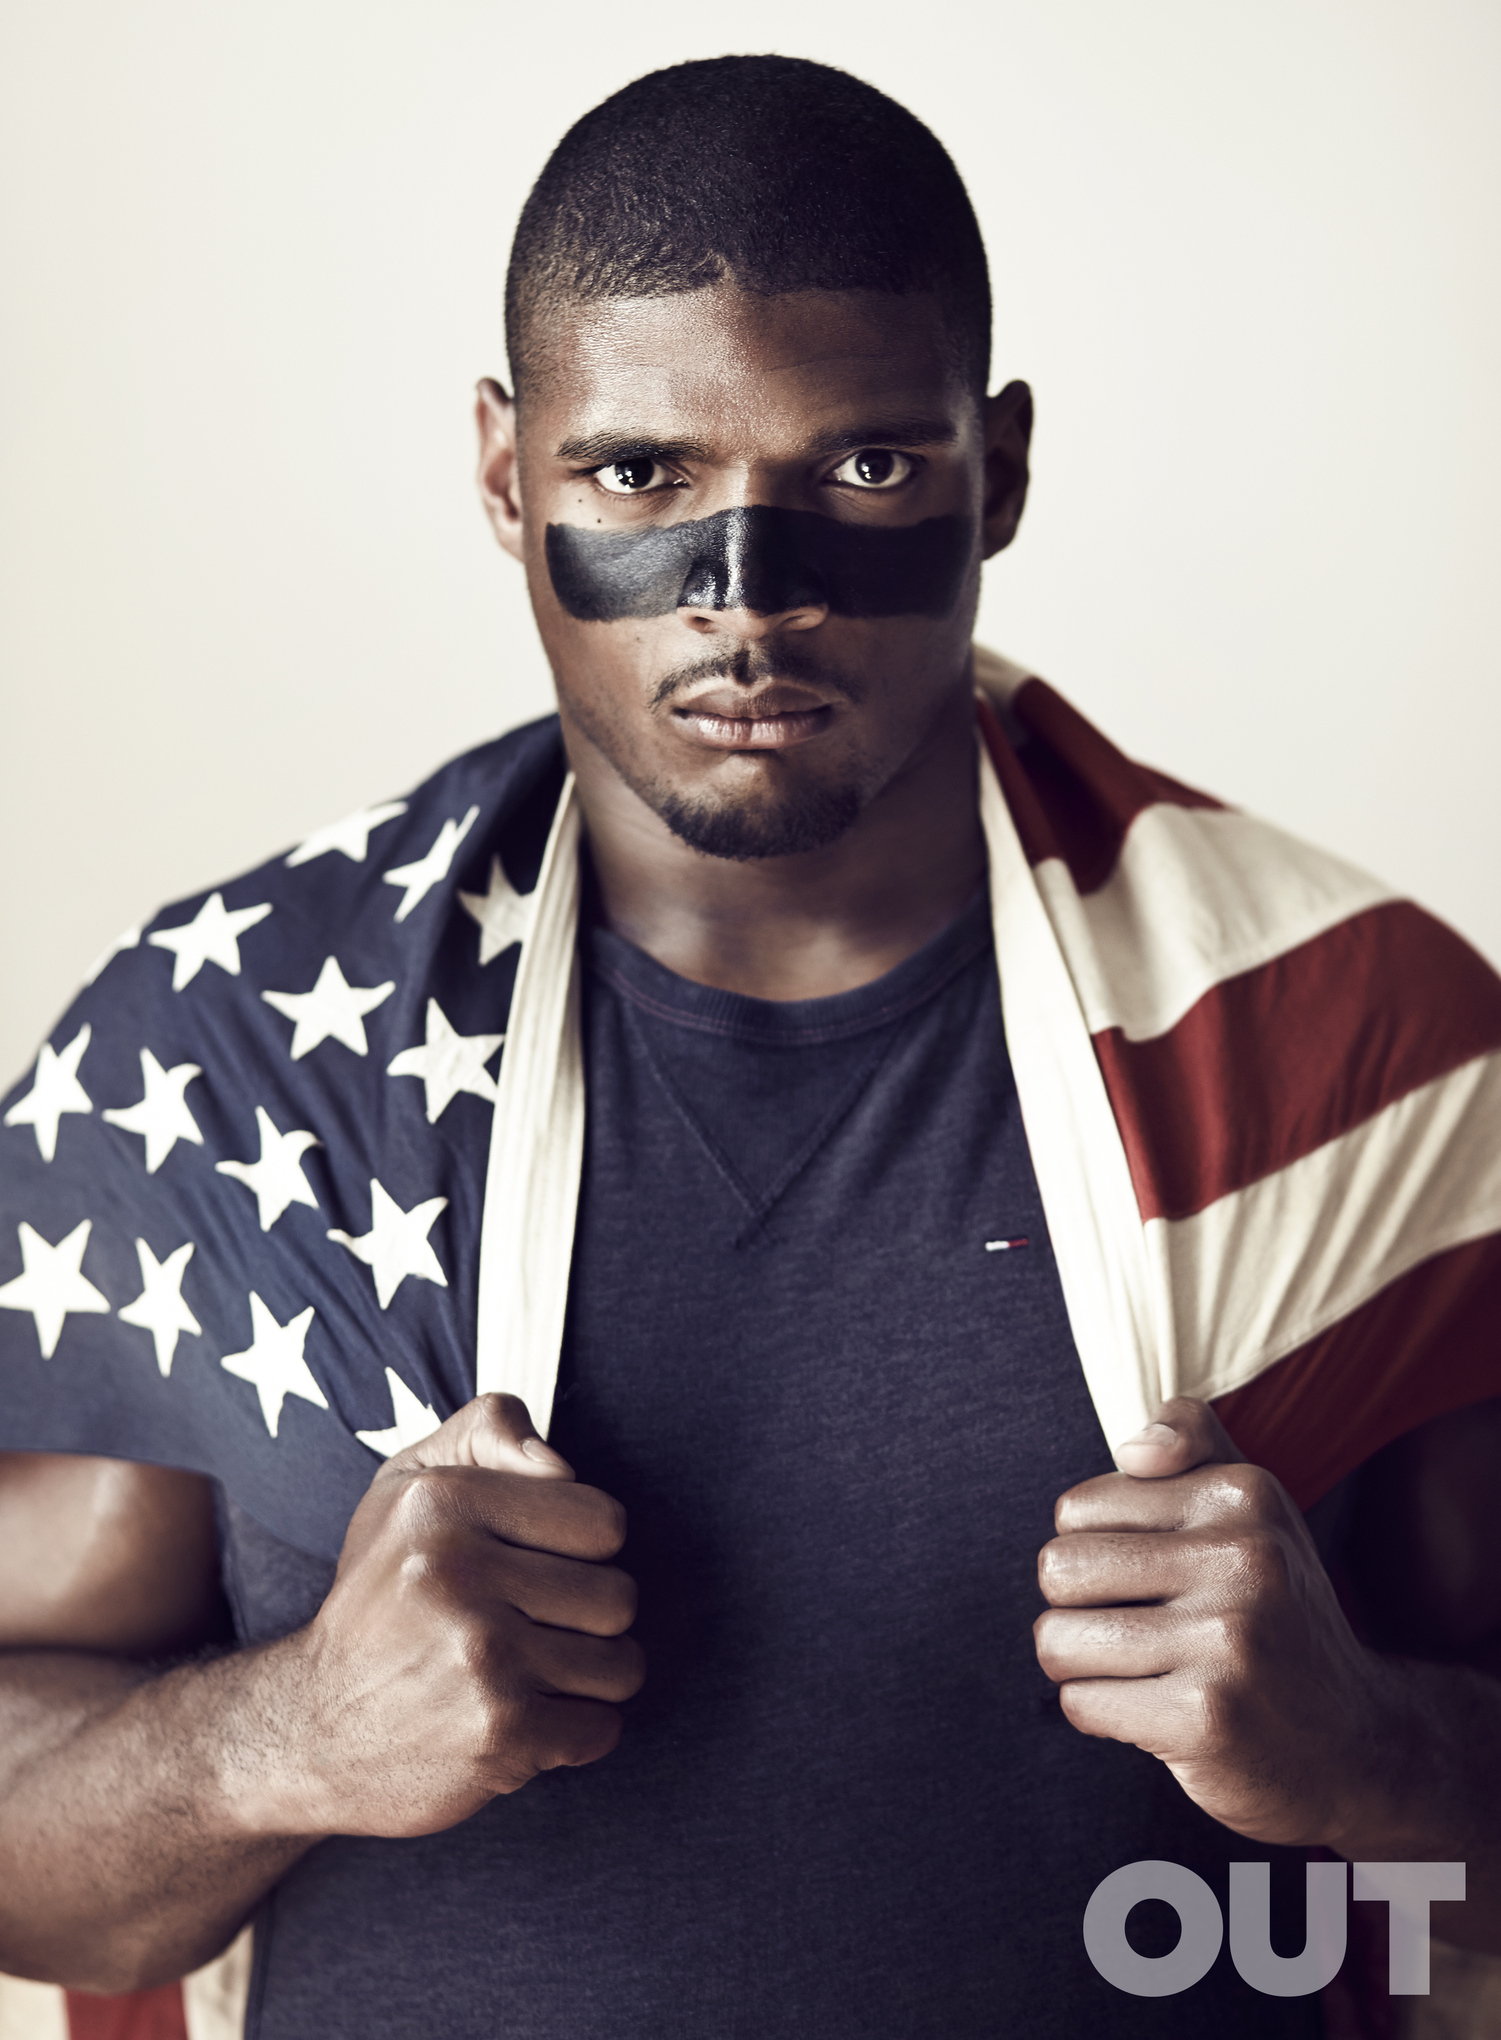 Michael Sam graces the cover of Out magazine's August 2014 sports issue.